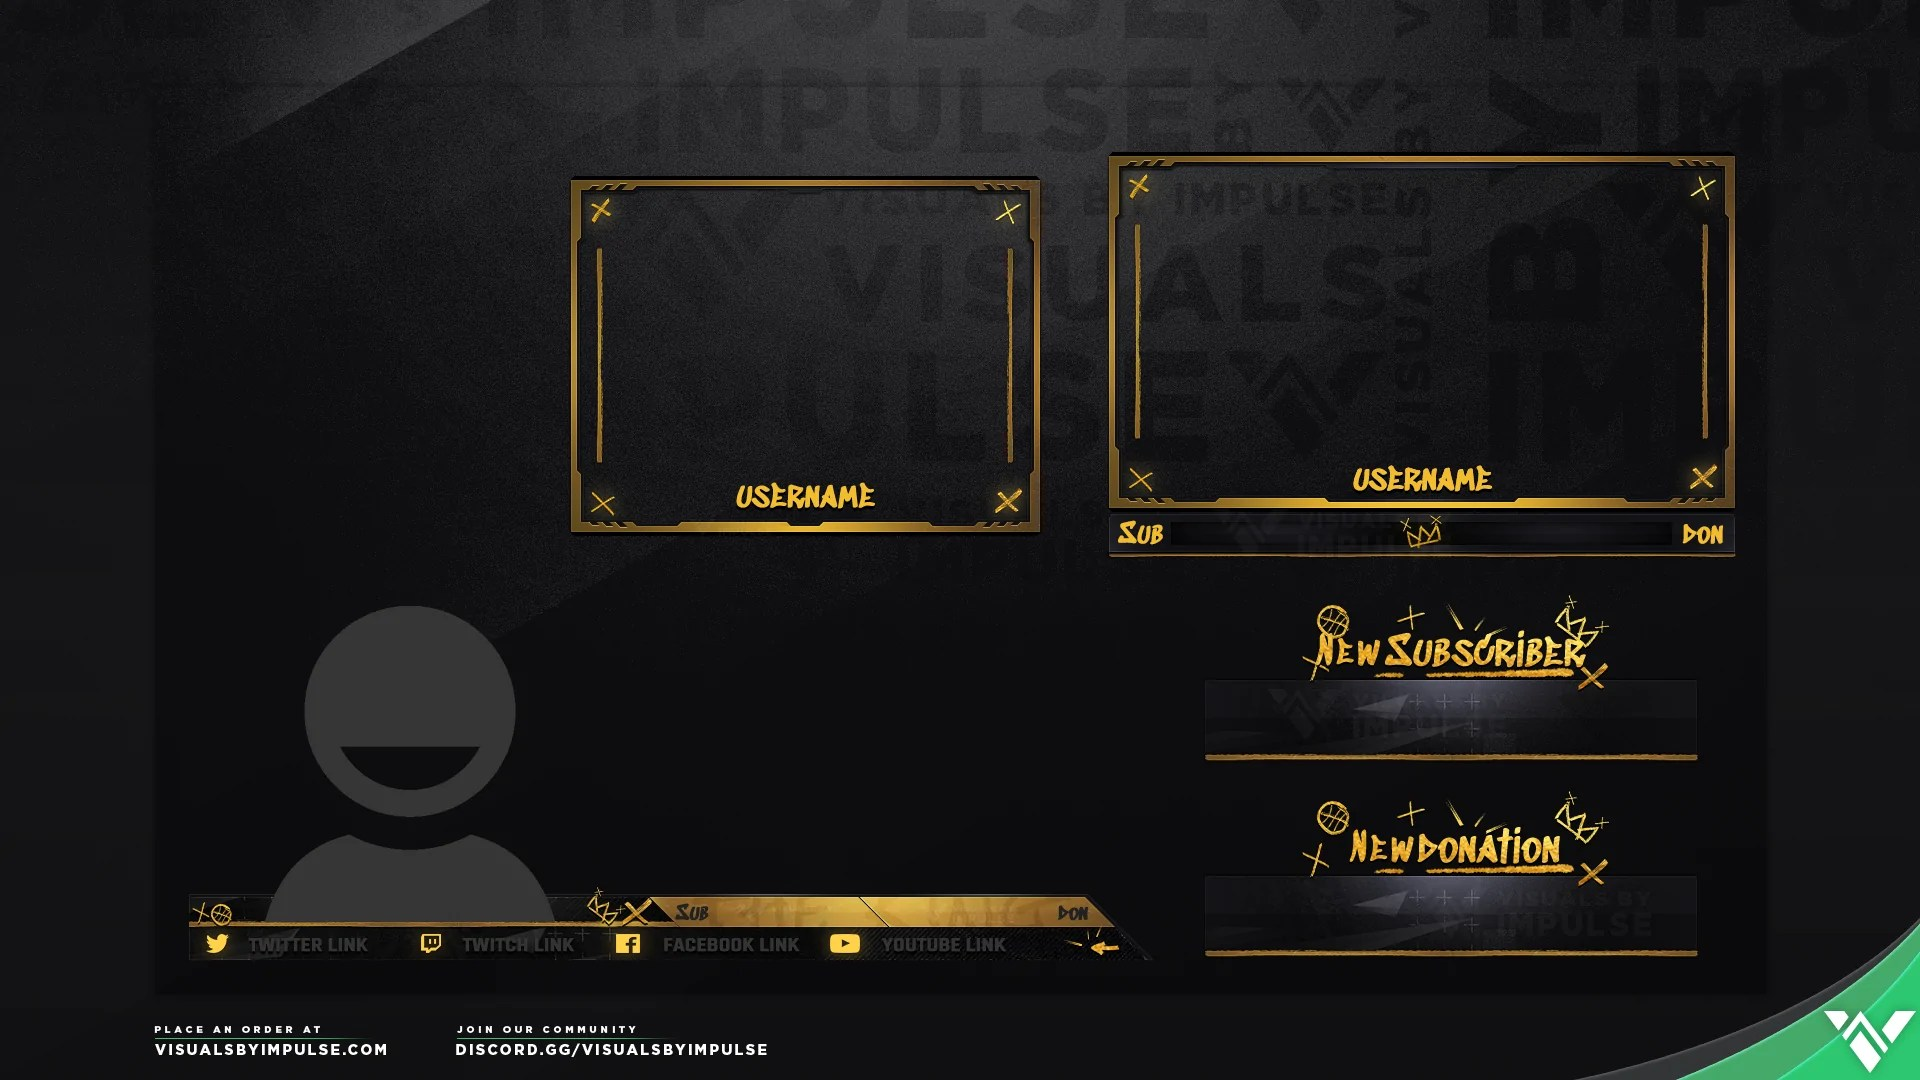 2K Stream Overlays  NBA 2K19 Graphics for Twitch and